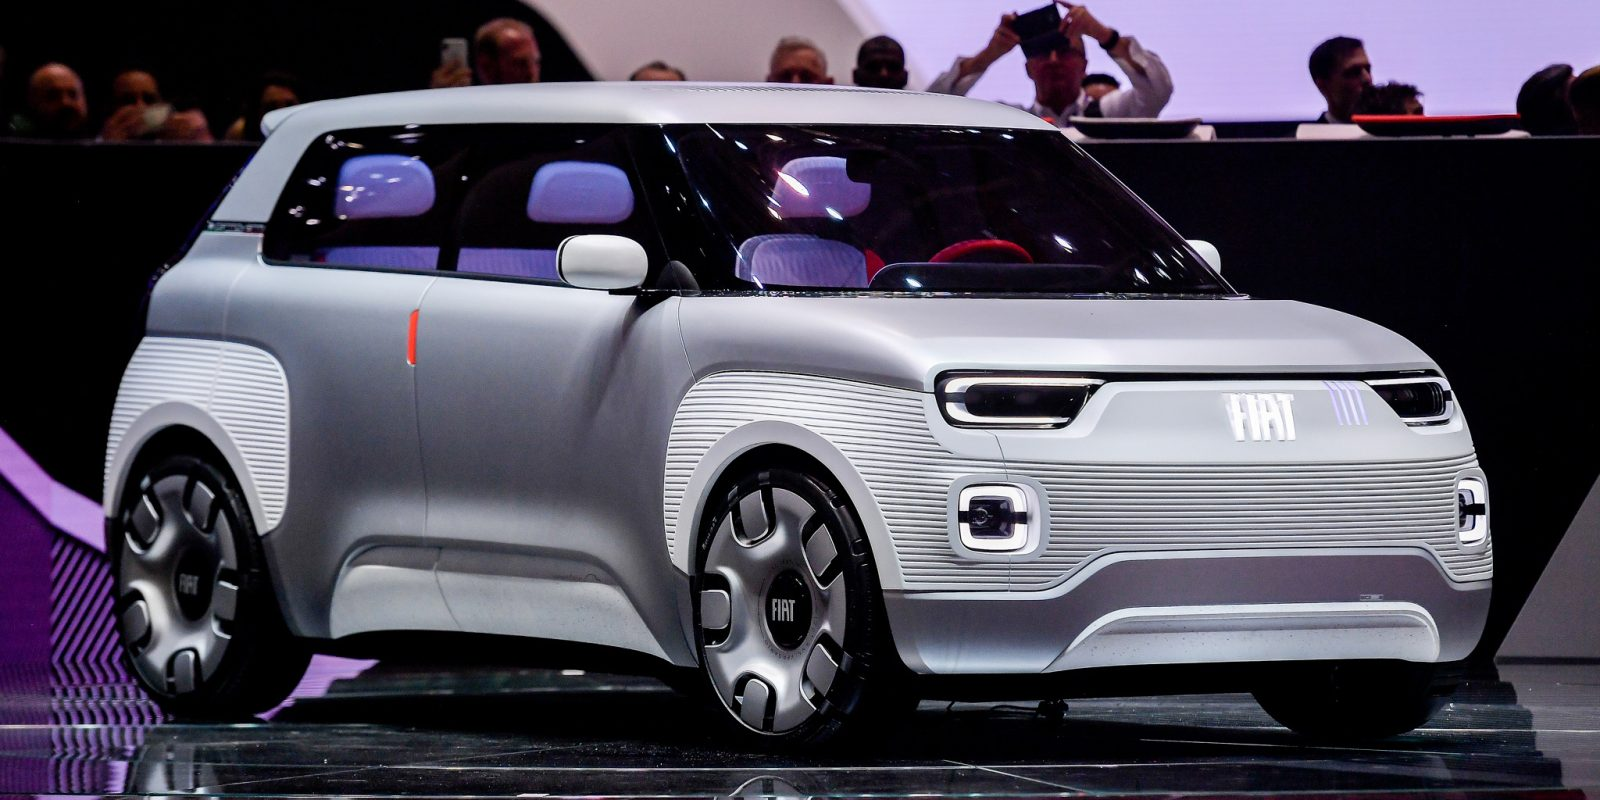 Fiat S Centoventi Is A Highly Customizable Concept Ev With Up To 311 Miles Of Range